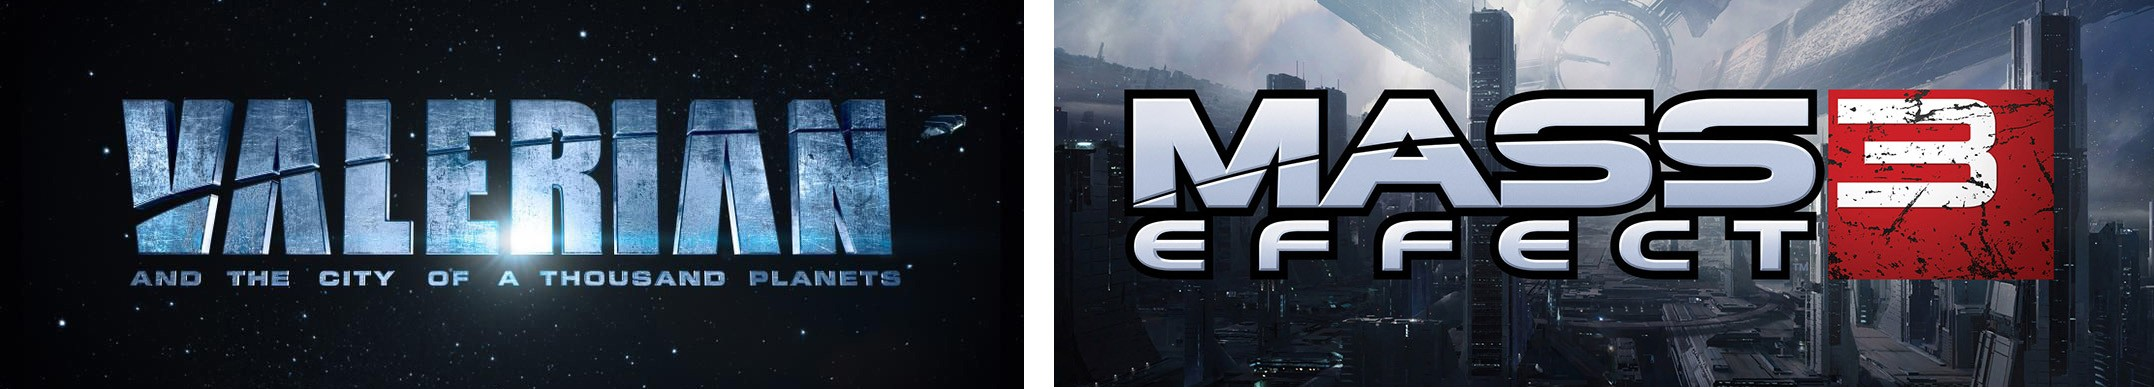 mass-effect-valerian-logo